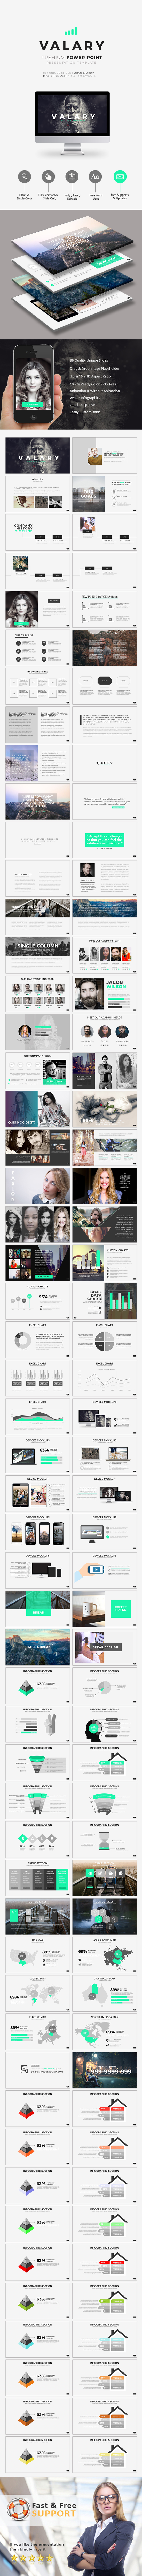 Valary Power Point Presentation - Business PowerPoint Templates